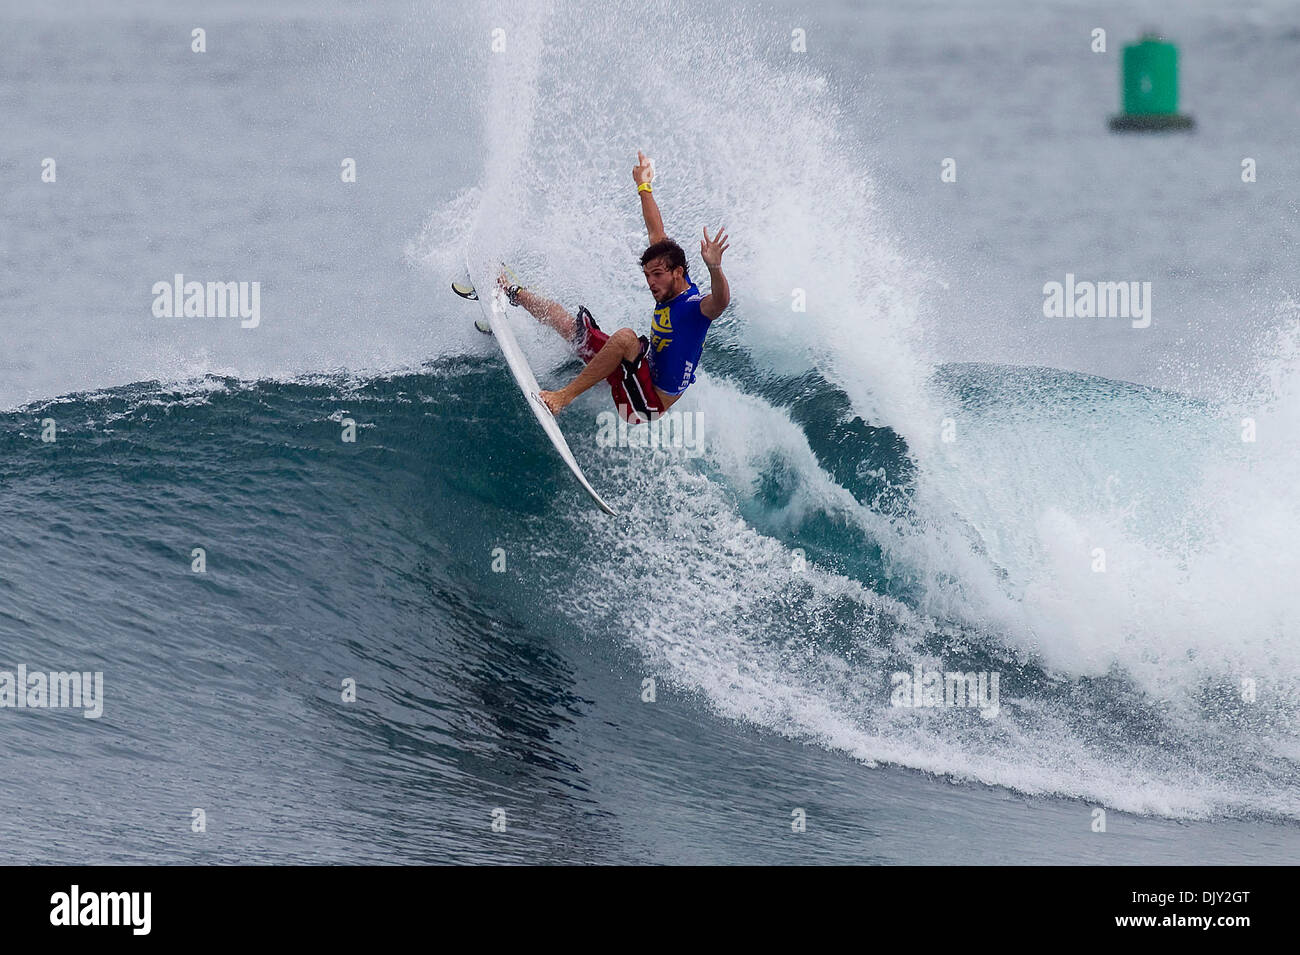 Nov 18, 2010 - Haleiwa, Hawaii, USA - Argentinean born ALEJO MUNIZ (BRA) the 2009 Vans Rookie of the Year moved one step closer to solidifying his spot on the 2011 ASP World Tour by advancing through the round of 64 at the Reef Hawaiian Pro in Haleiwa, Hawaii today.Muniz placed second behind heat winner Daniel Ross (AUS) to earn his spot into the round of 32. (Credit Image: © Kirst - Stock Image